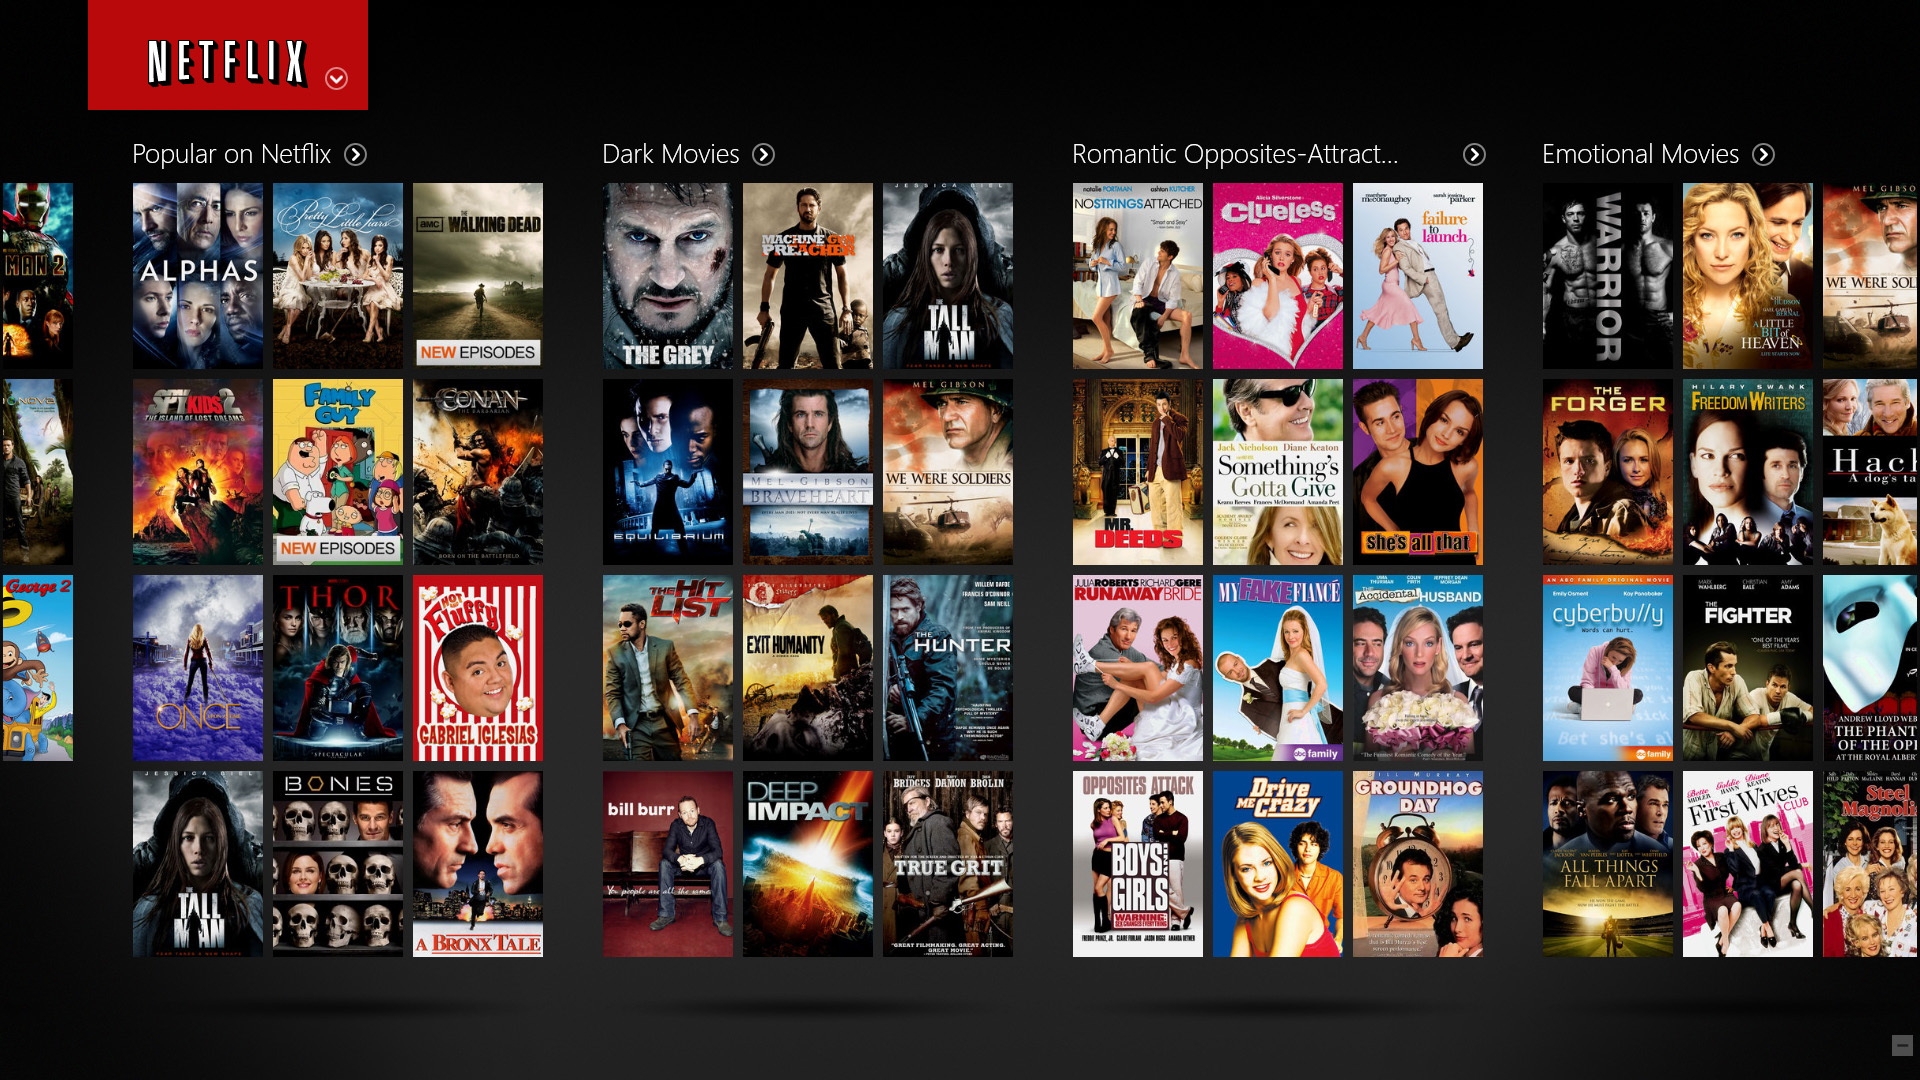 What Netflix Has Learned About How Viewers Respond to Images [Study] | Social Media Today